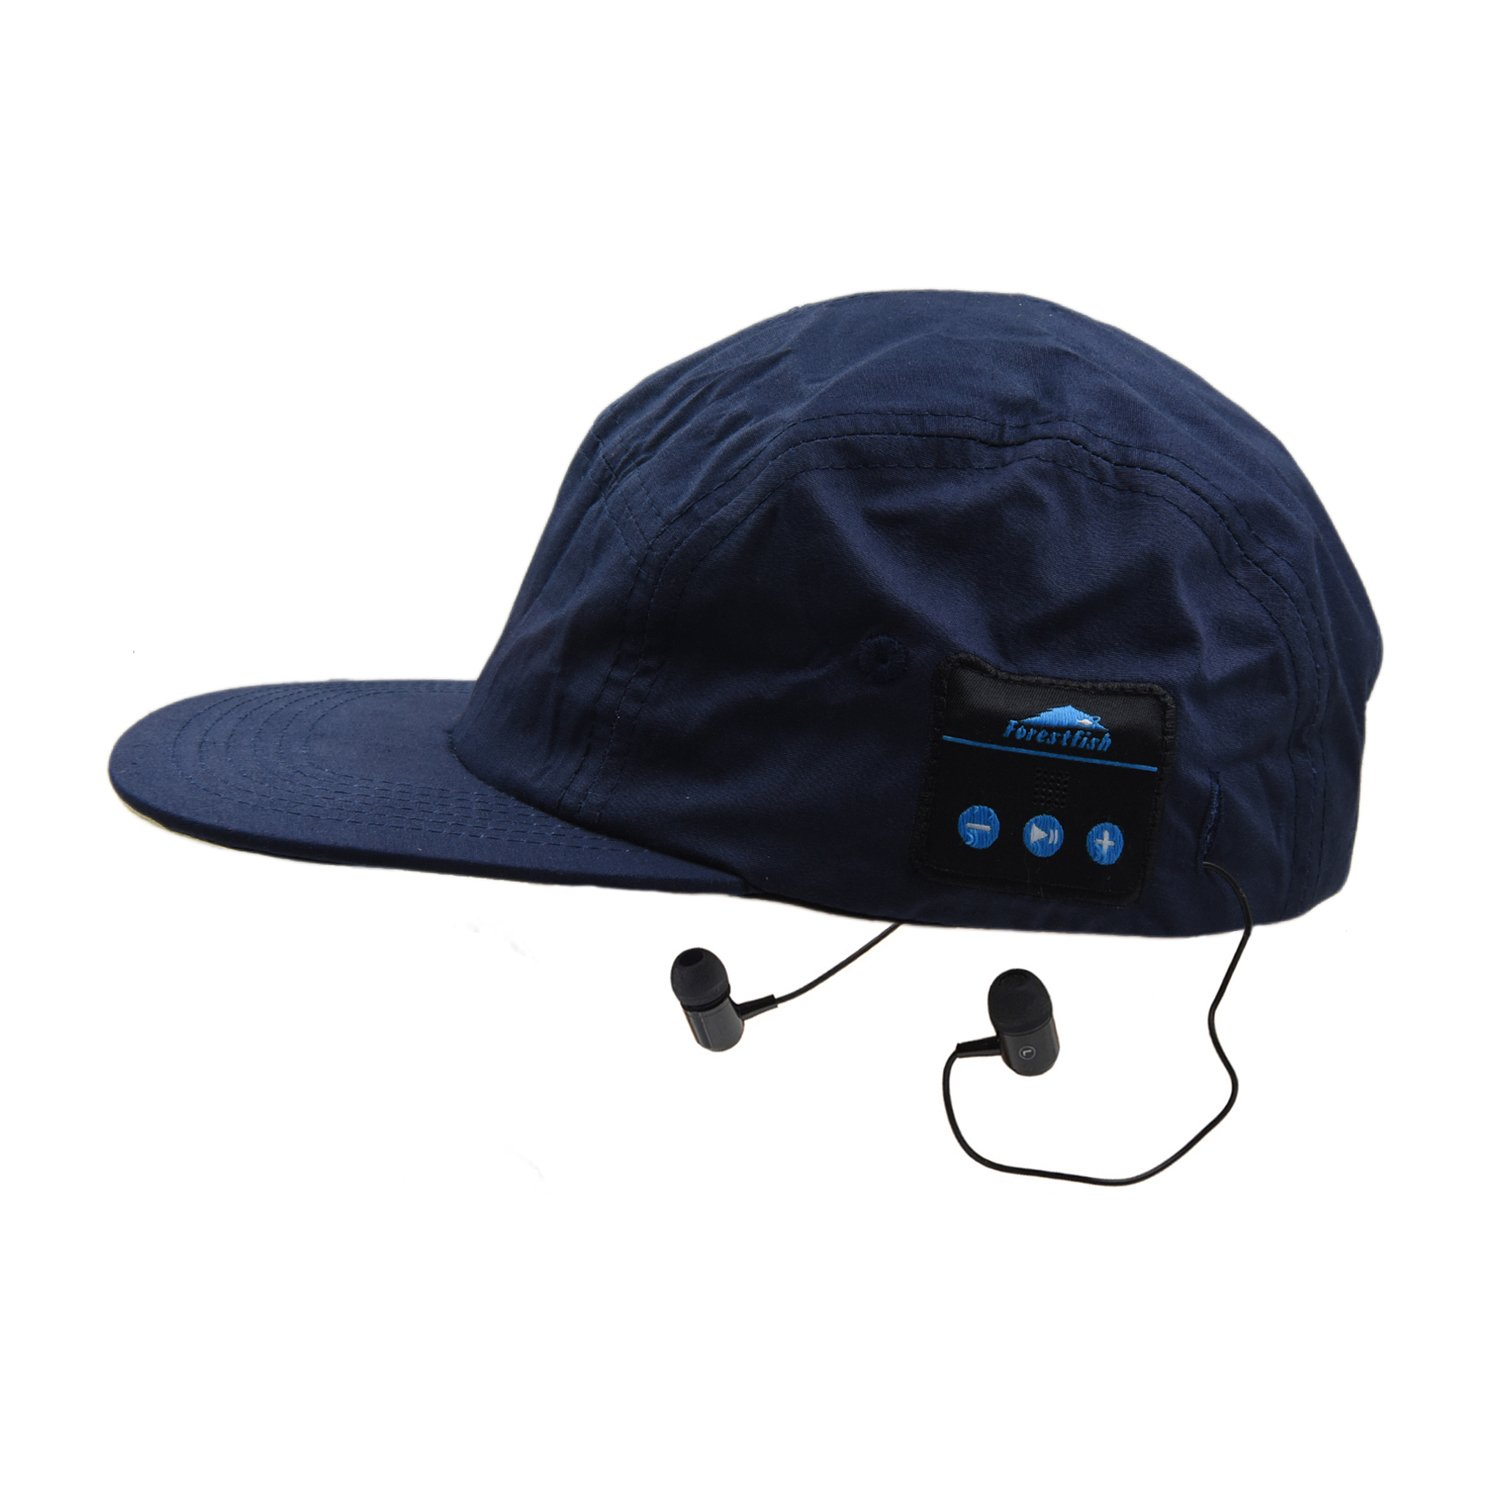 Forestfish Wireless Bluetooth Baseball Cap Sun Hat Smart Wireless Hands-Free Bluetooth Headset Sports Cap Music Speaker Mic Adjustable Velcro Baseball Cap for Men Women